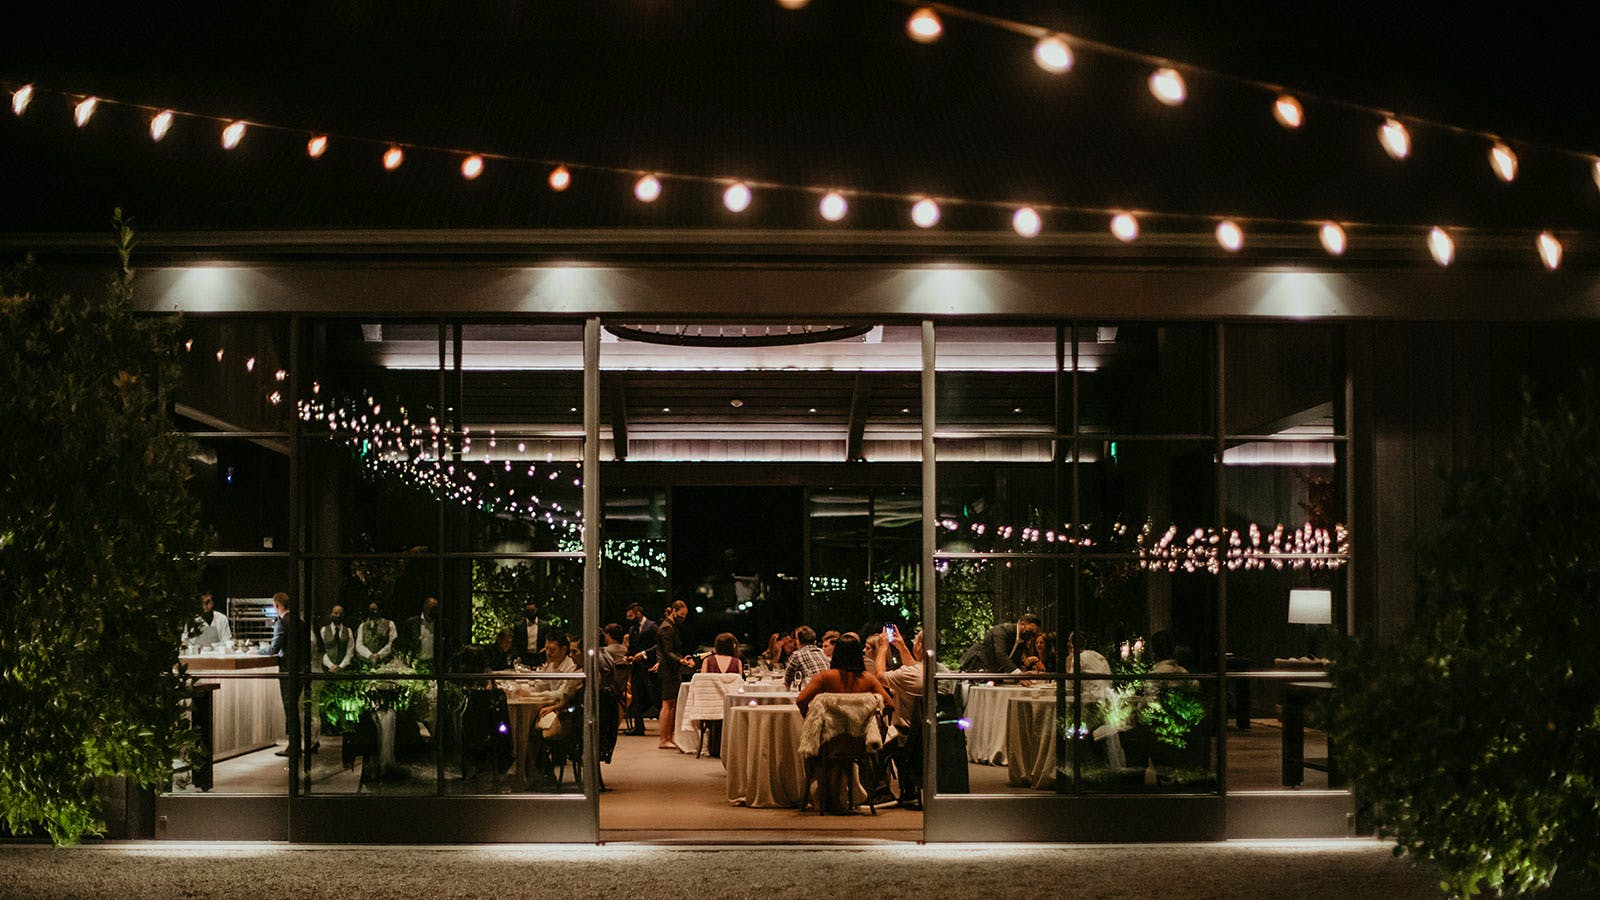 The Restaurant at Meadowood Returns with Pop-Up at Ojai Valley Inn